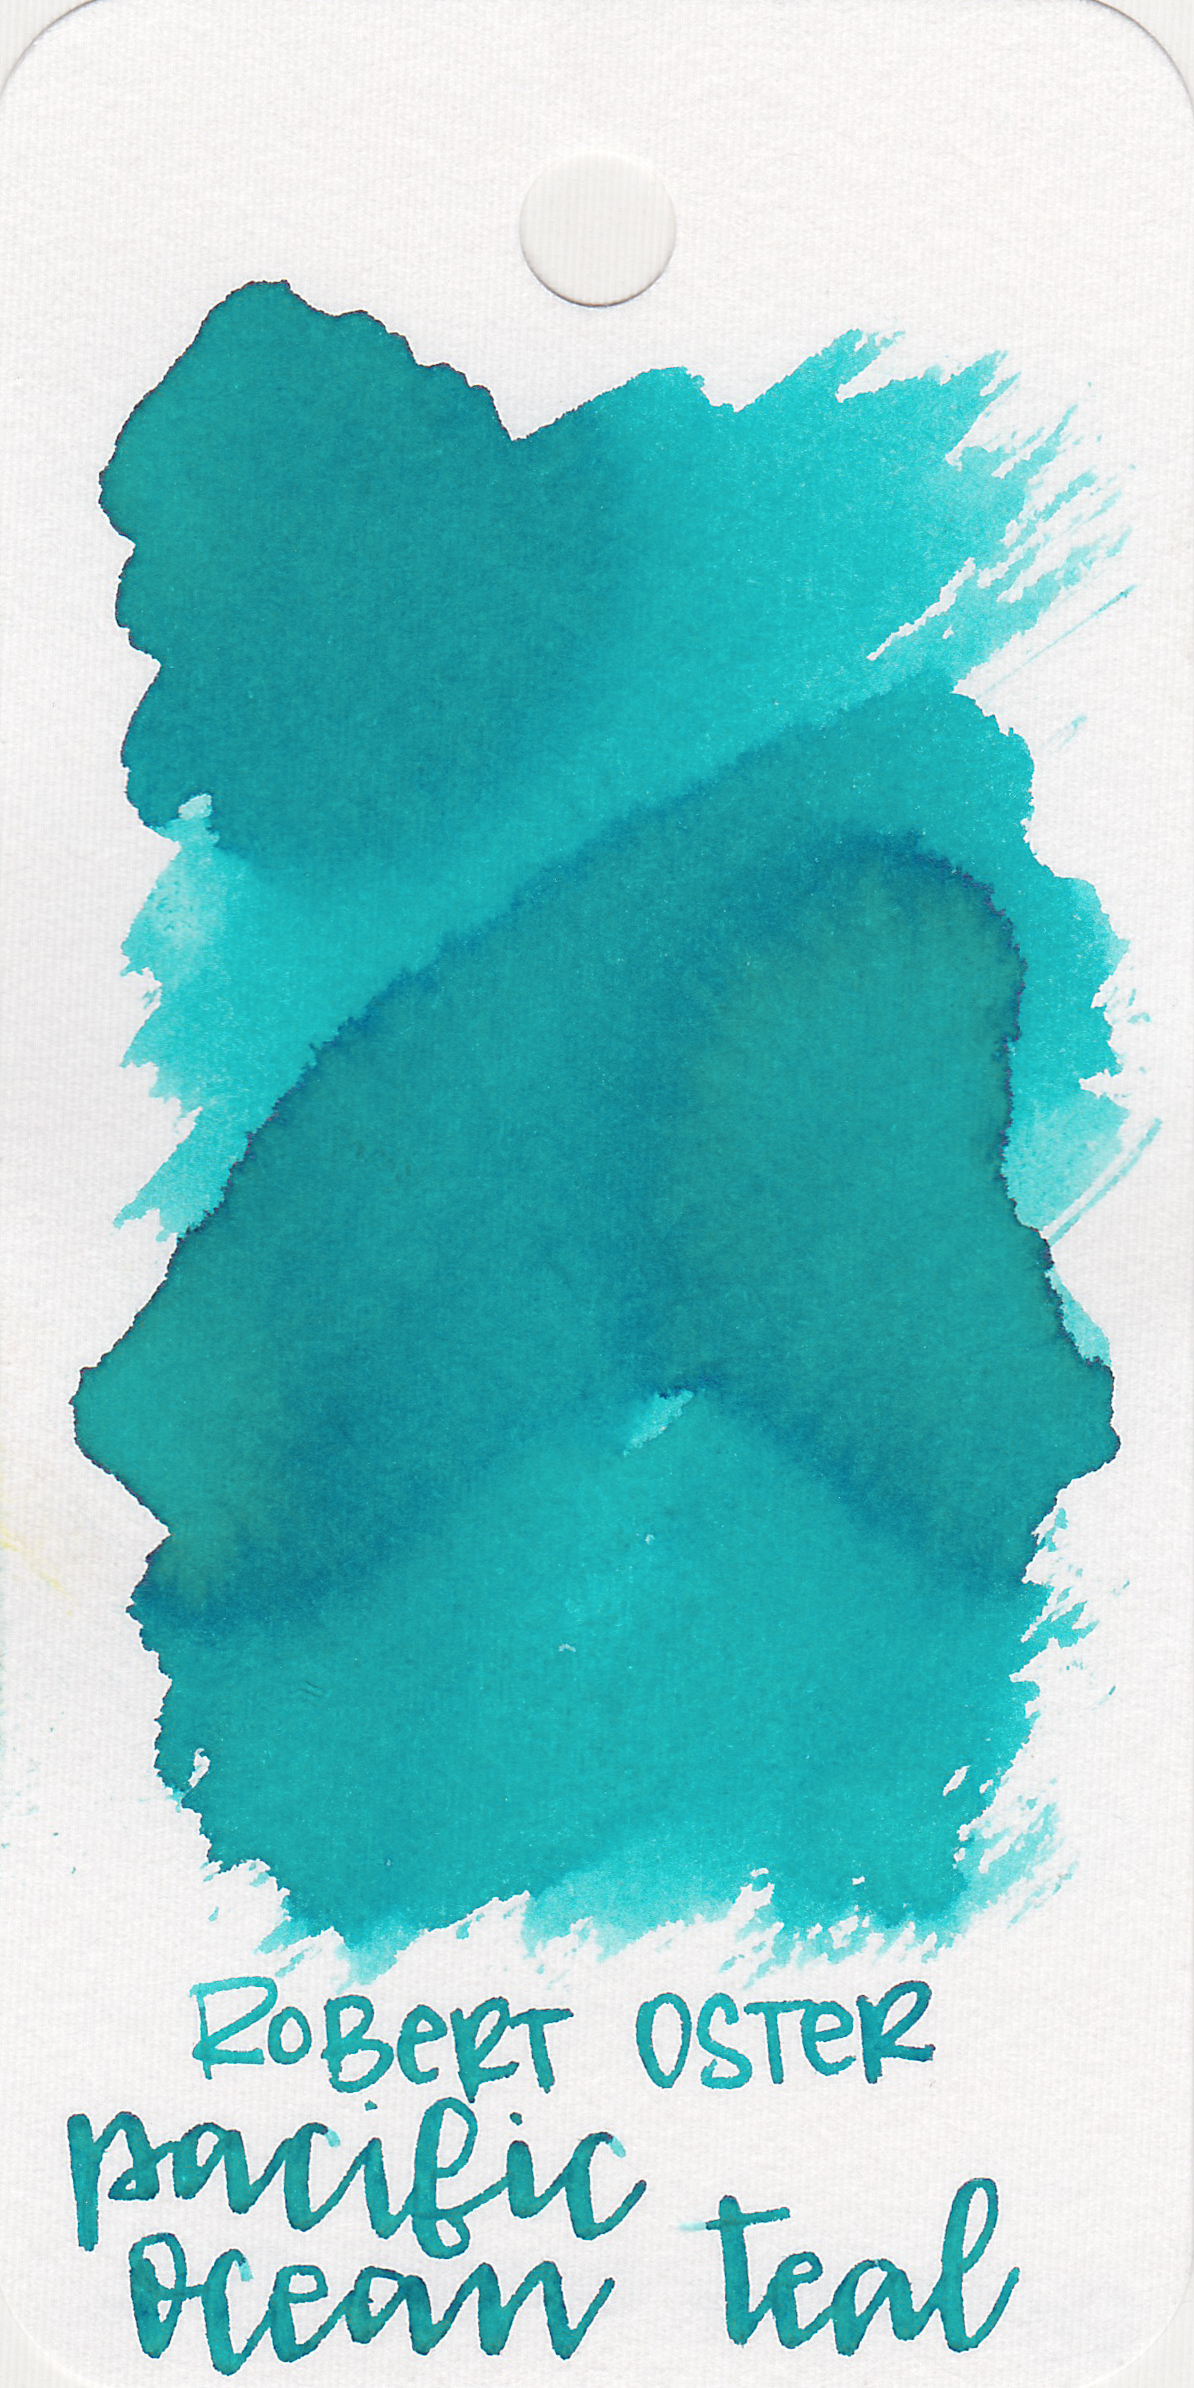 The color: - Pacific Ocean Teal is a light teal, it is almost a blue, but there is a bit of green in there.